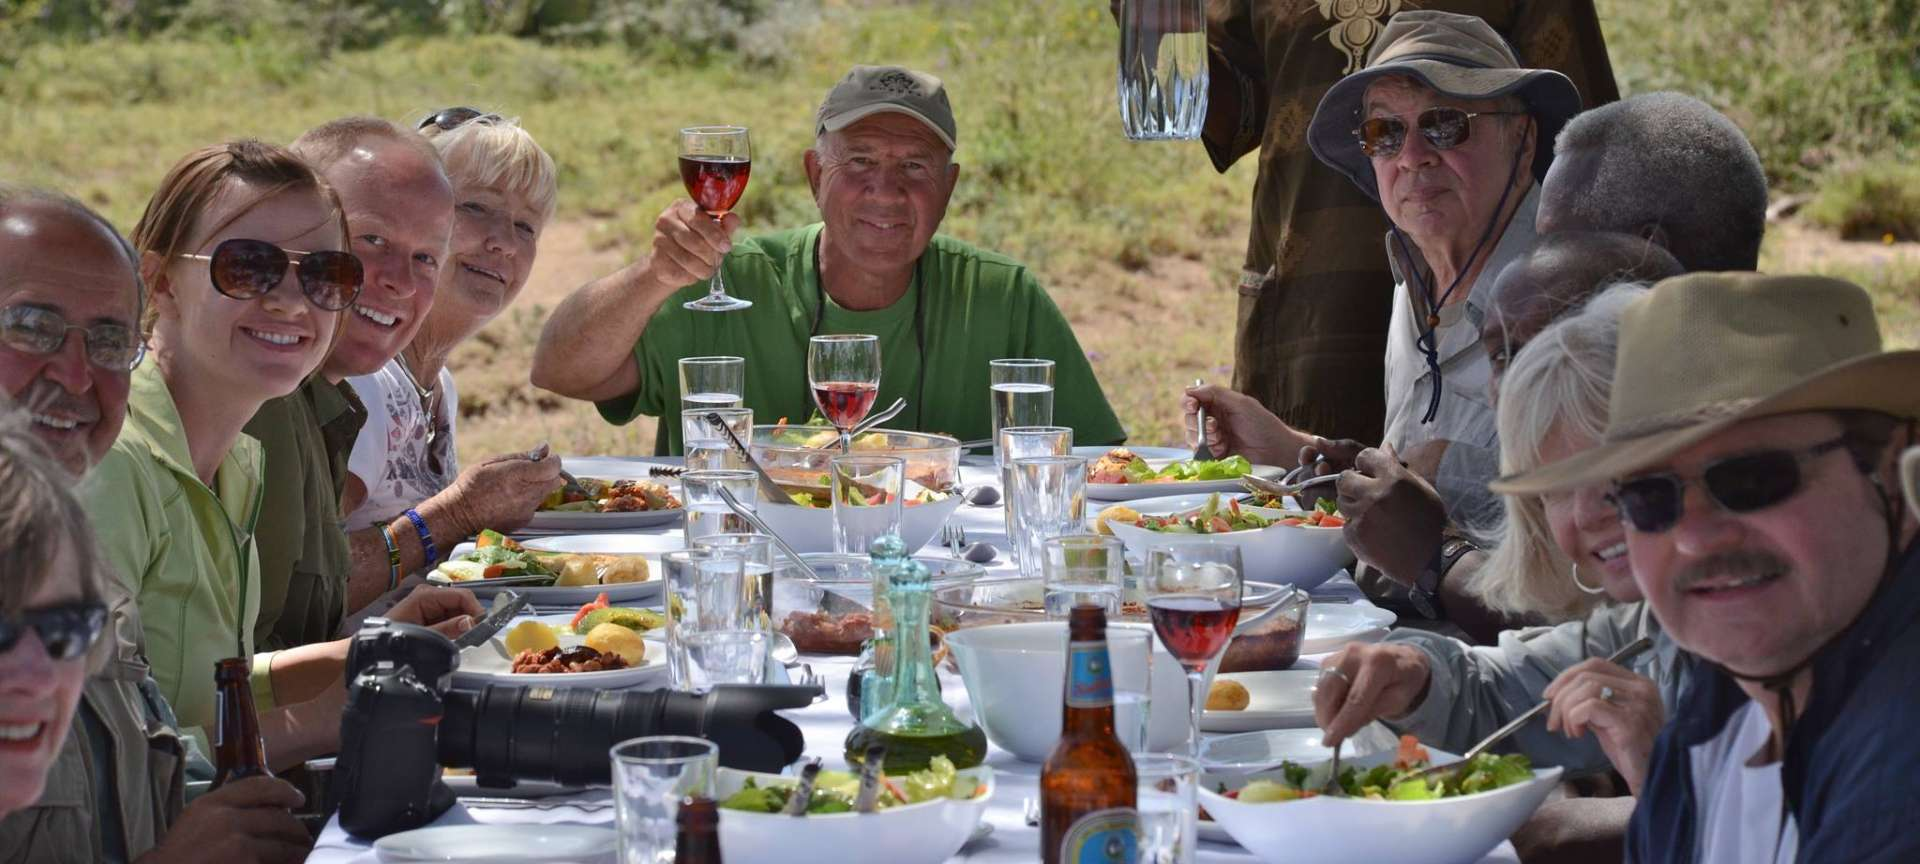 A meal in the Africa bush